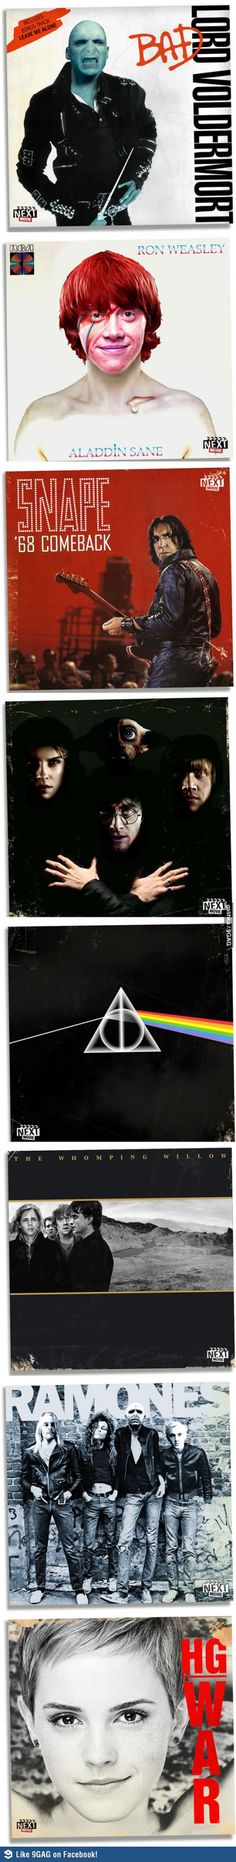 Harry Potter and Classic Album Covers lol